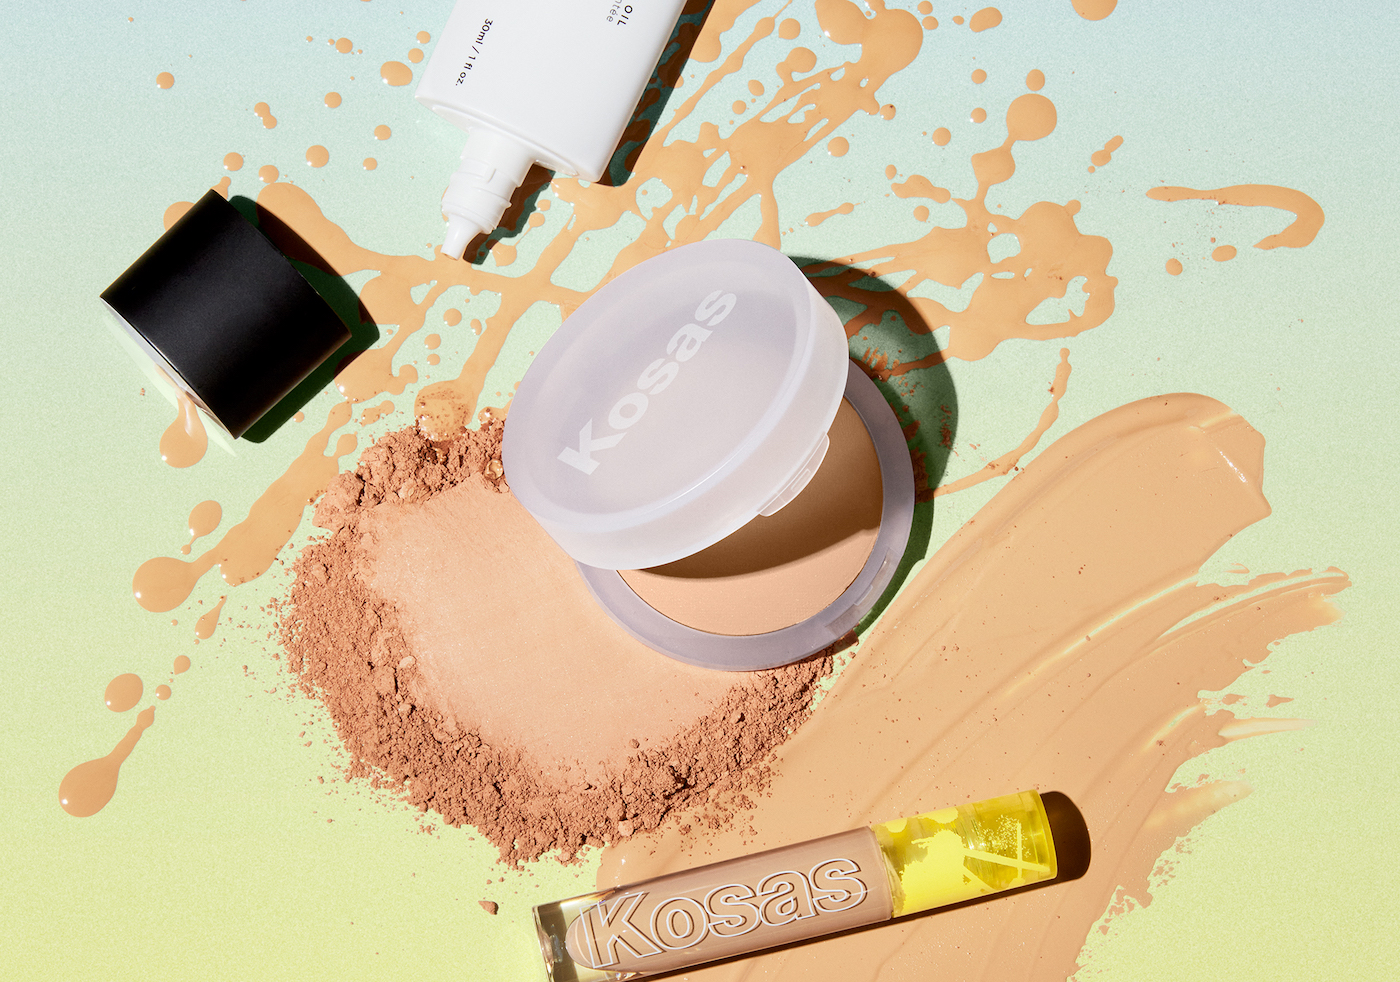 Thumbnail for Kosas Just Dropped a Shine-Zapping Powder That Won't Completely Flatten Your Skin